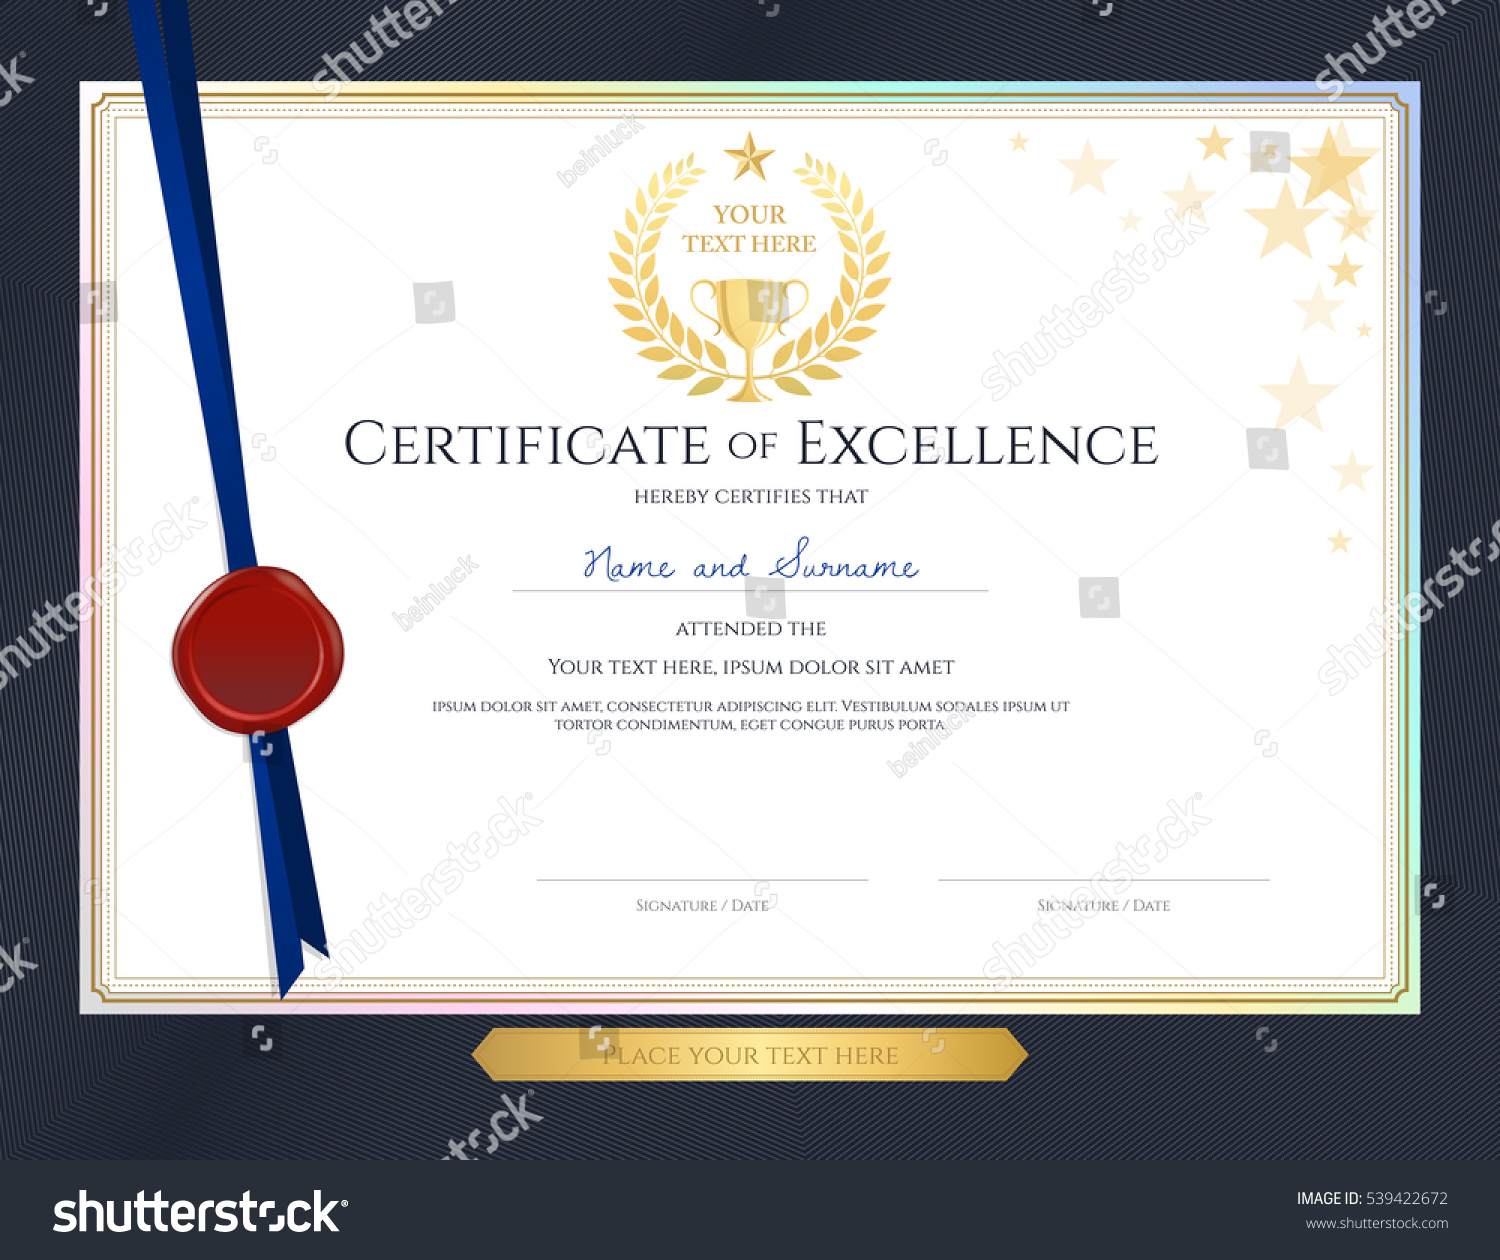 Elegant certificate template excellence achievement appreciation elegant certificate template for excellence achievement appreciation or completion on blue border background xflitez Image collections